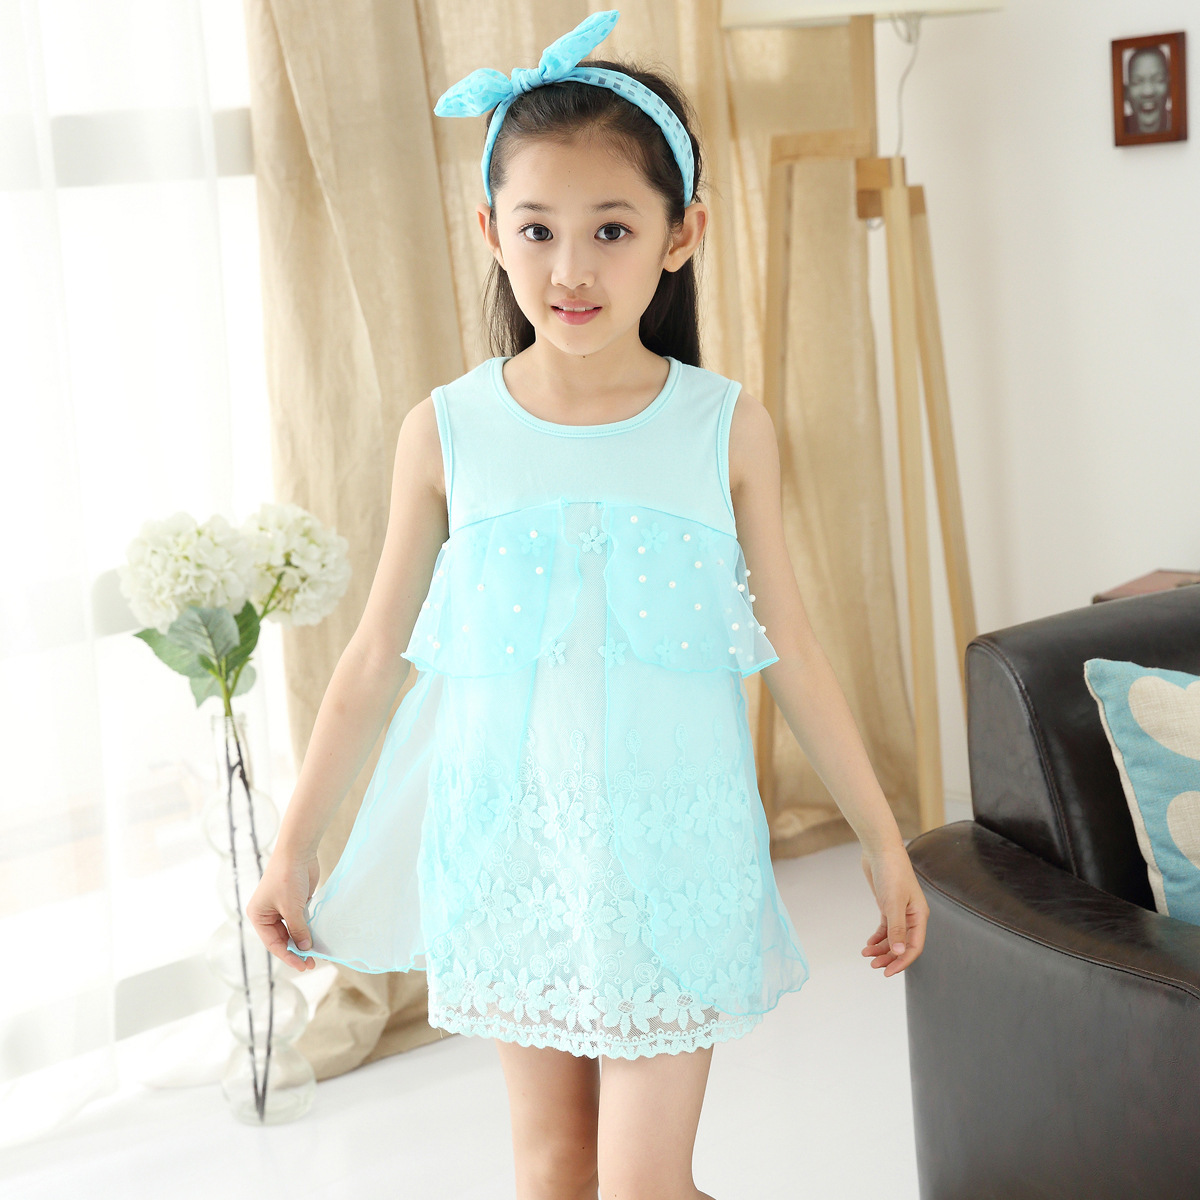 Children's Garment Summer Wear New Pattern Korean Lace Mother And Daughter Parenting Children Dress Kids Clothing Mesh Pearls woody mutambo abraham sinyei and josephat onyancha parenting styles experienced by adolescents and assertive behaviour